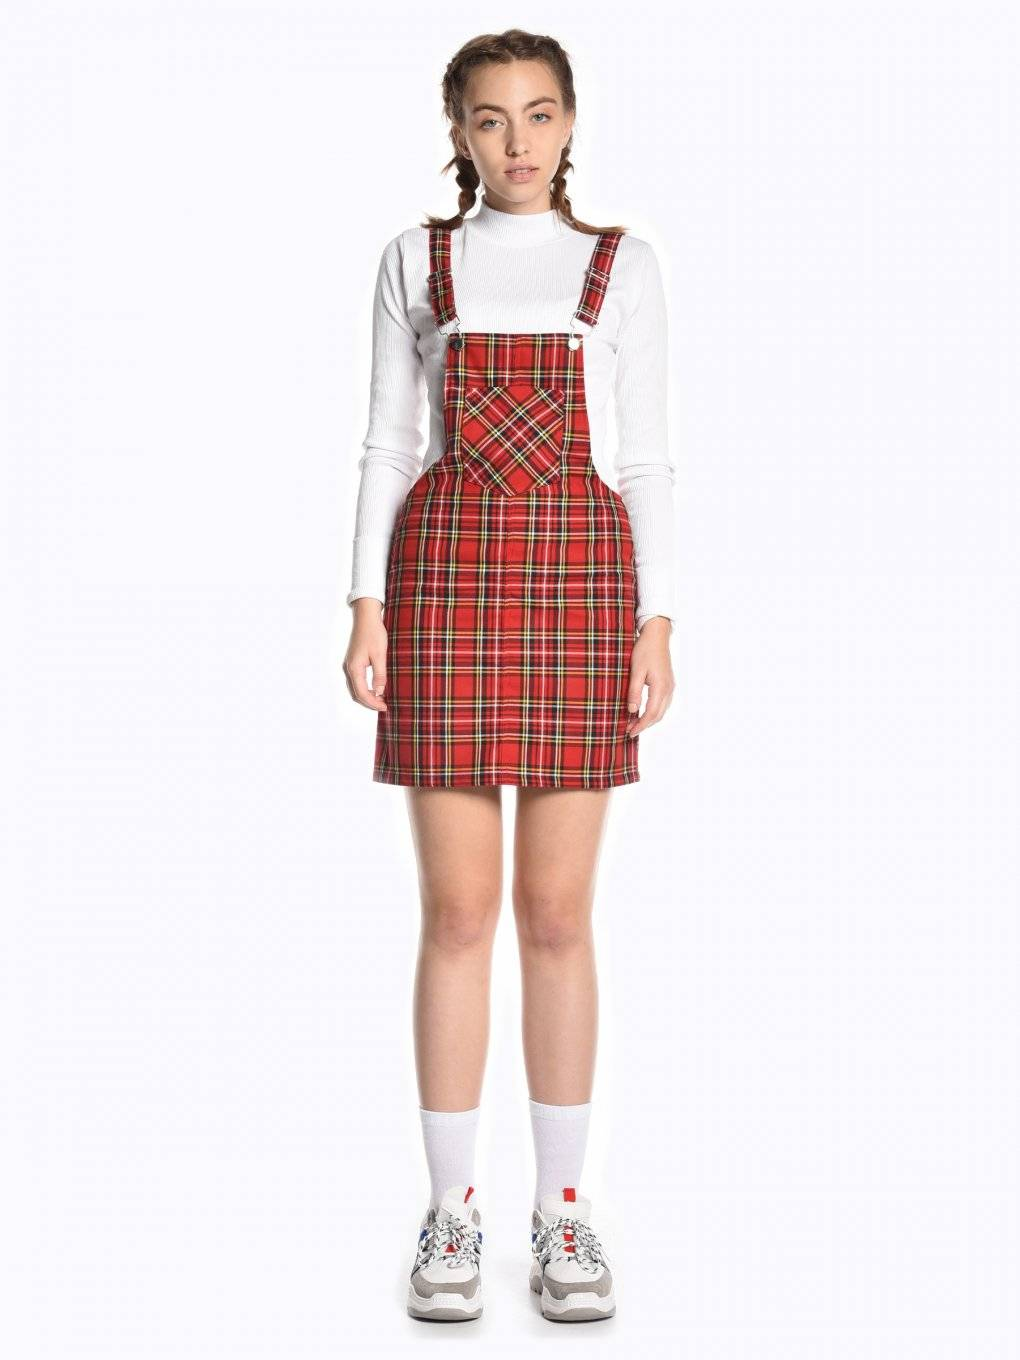 Plaid dungaree skirt with patch pocket